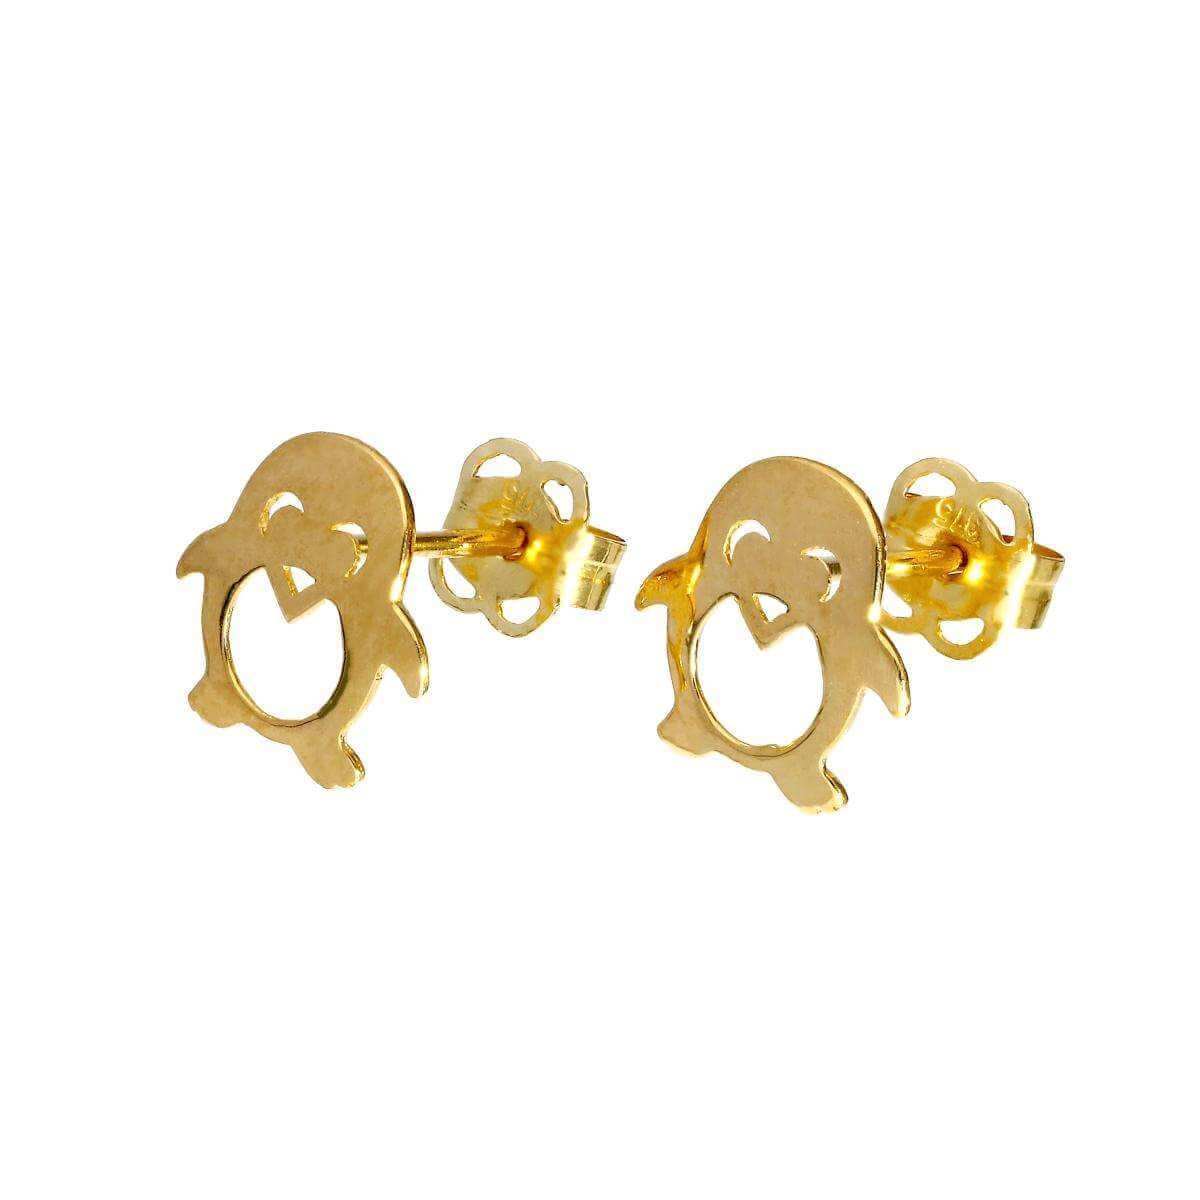 9ct Gold Happy Penguin w Cut Out Details Stud Earrings